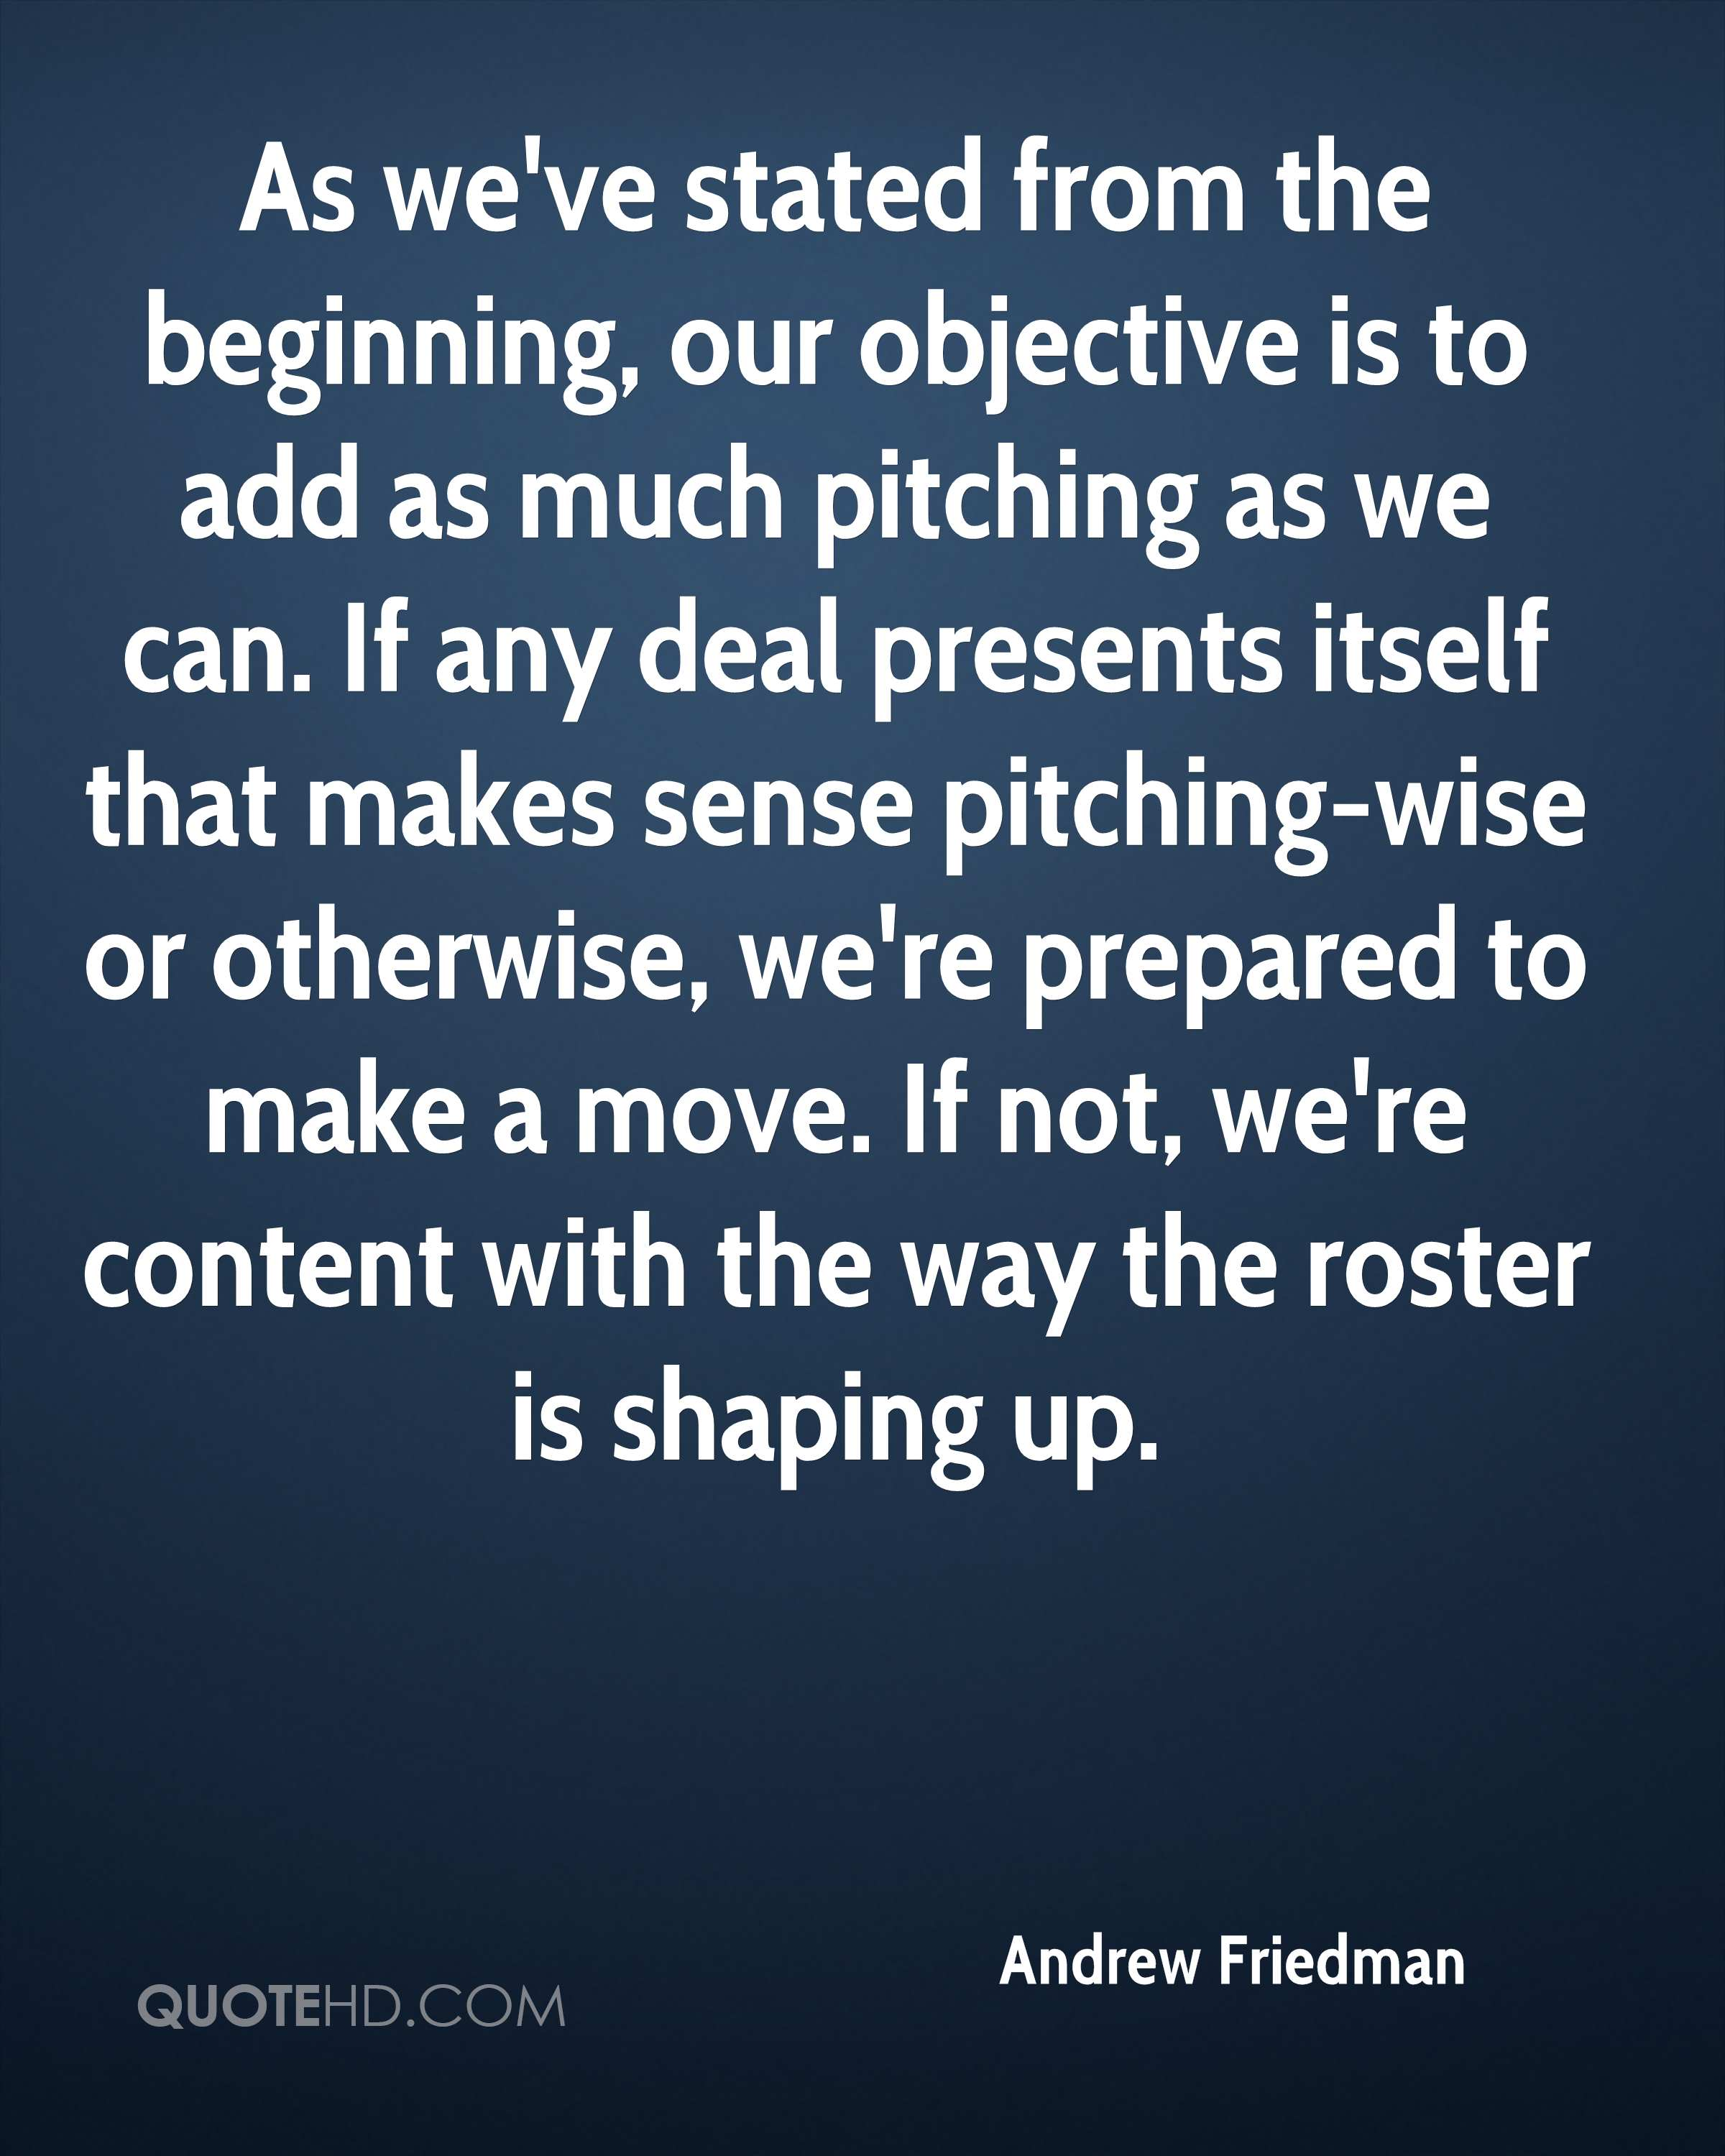 As we've stated from the beginning, our objective is to add as much pitching as we can. If any deal presents itself that makes sense pitching-wise or otherwise, we're prepared to make a move. If not, we're content with the way the roster is shaping up.